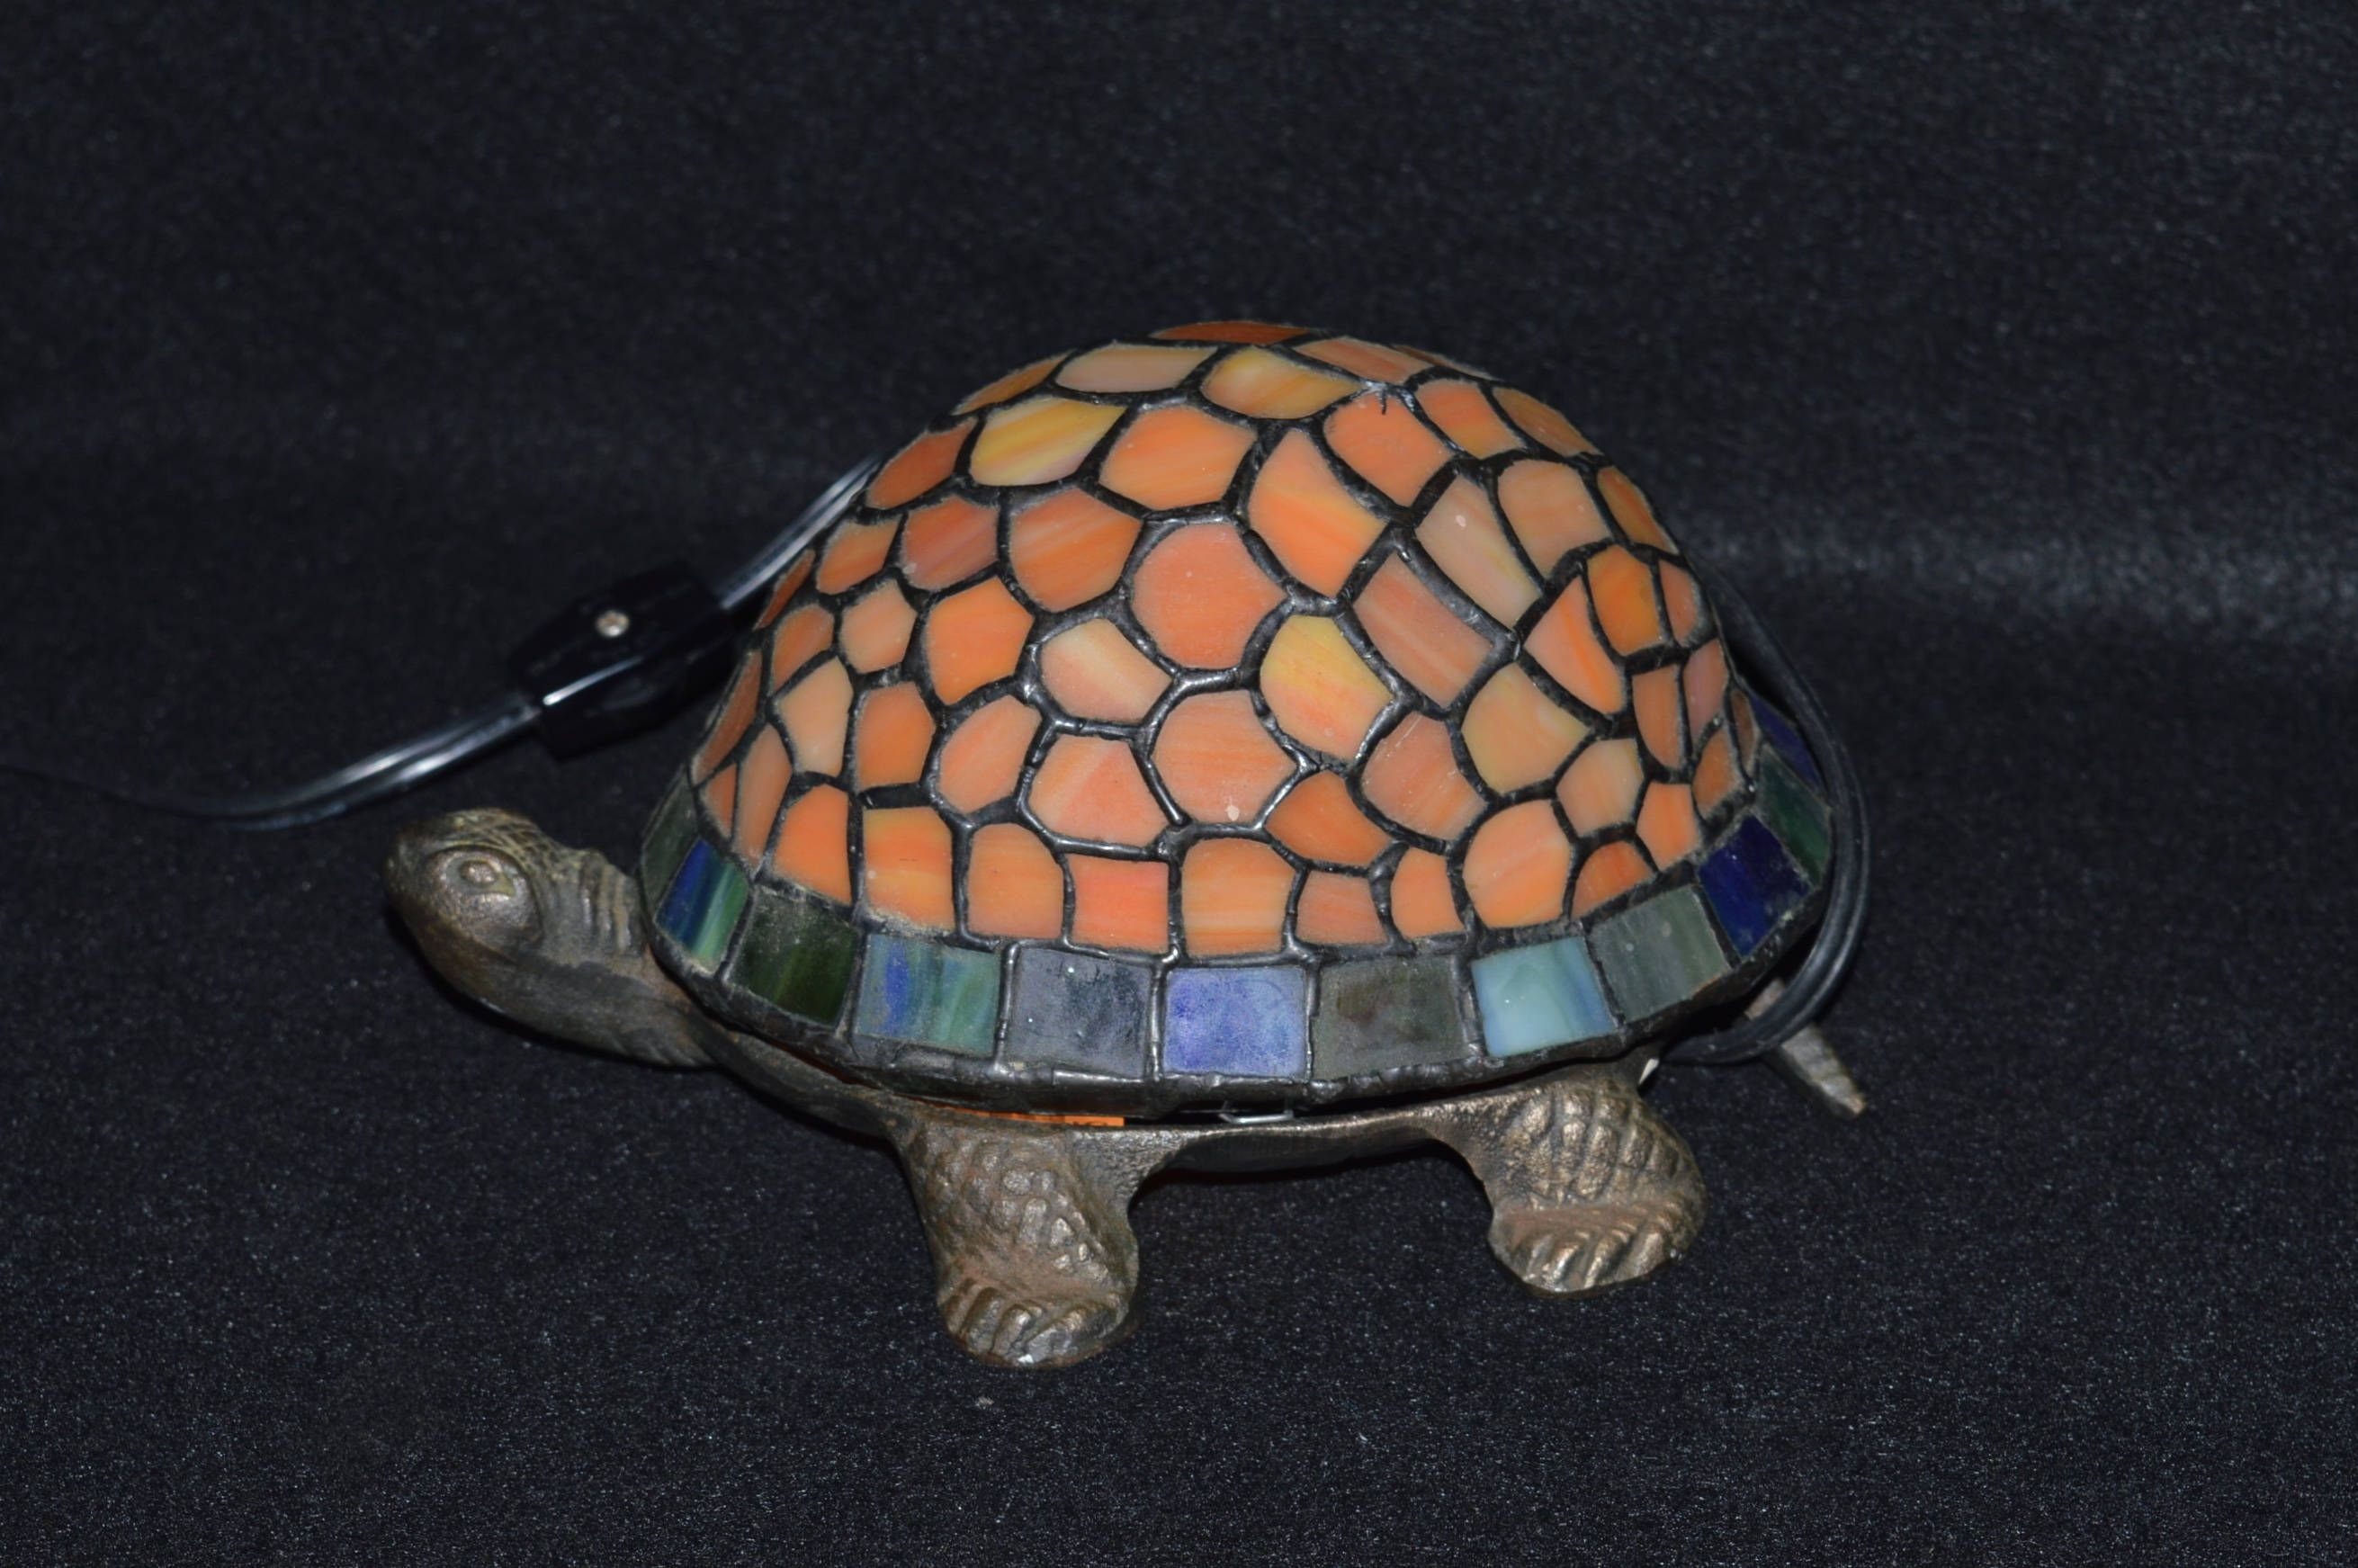 Stained Gl Turtle Lamp Cast Iron Night Light W Shade Tiffany Style Table Tortoise By